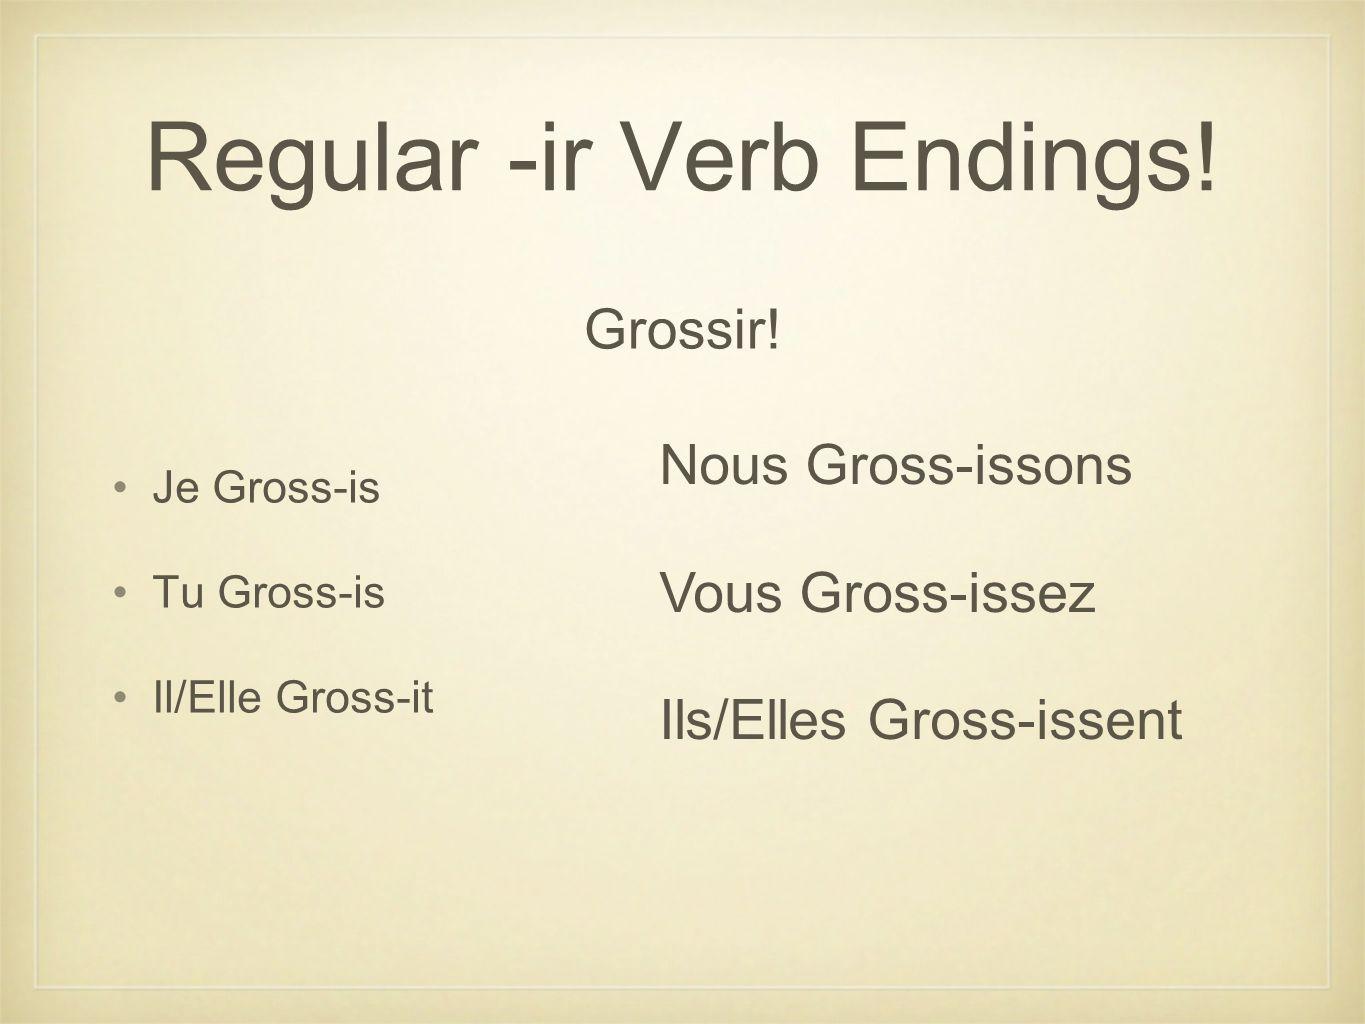 Regular -ir Verb Endings!